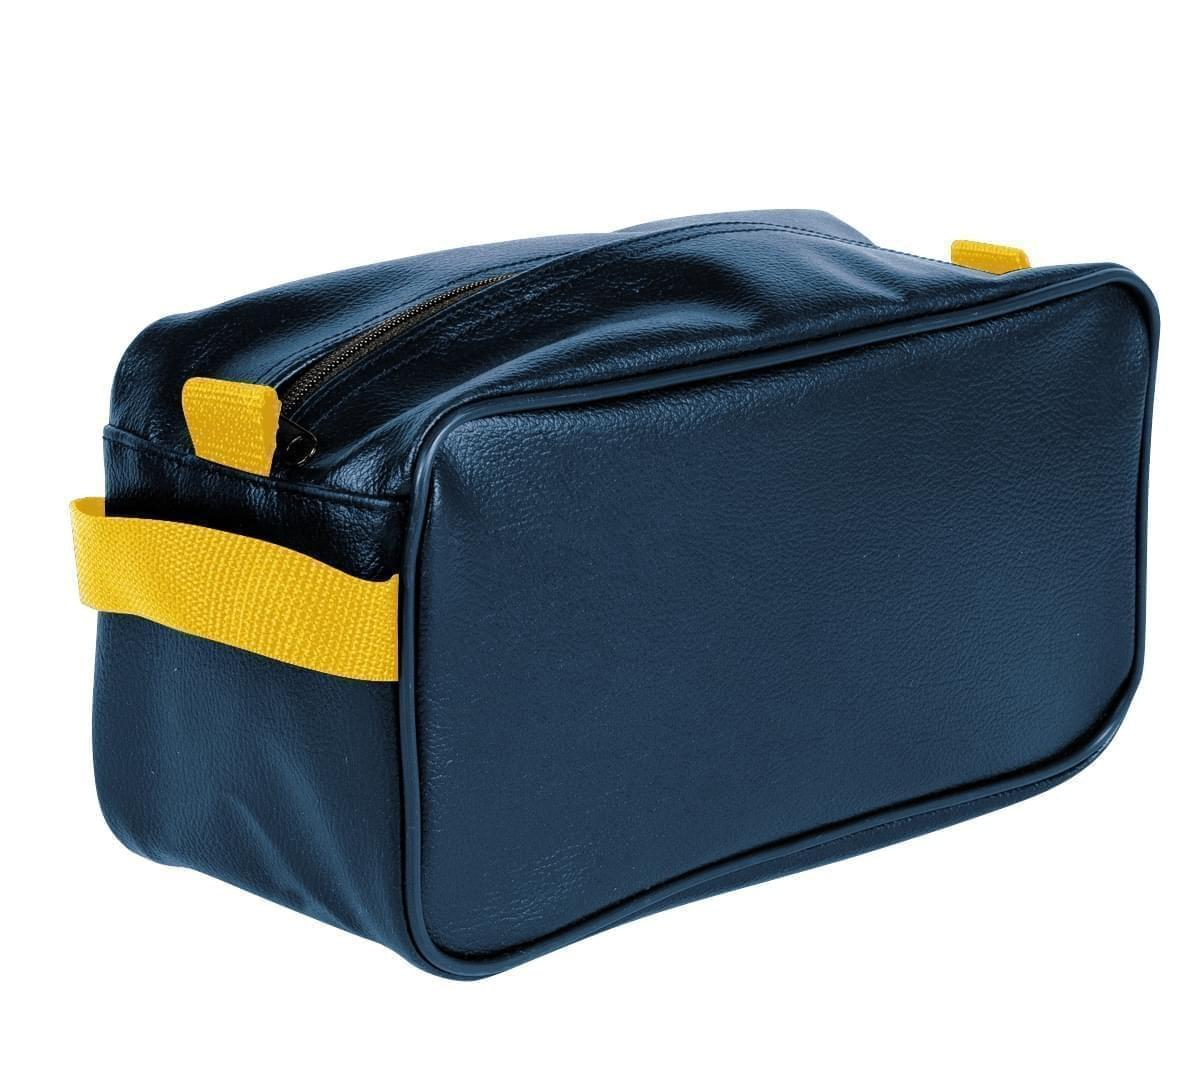 USA Made Cosmetic & Toiletry Cases, Navy-Gold, 3000996-AW5